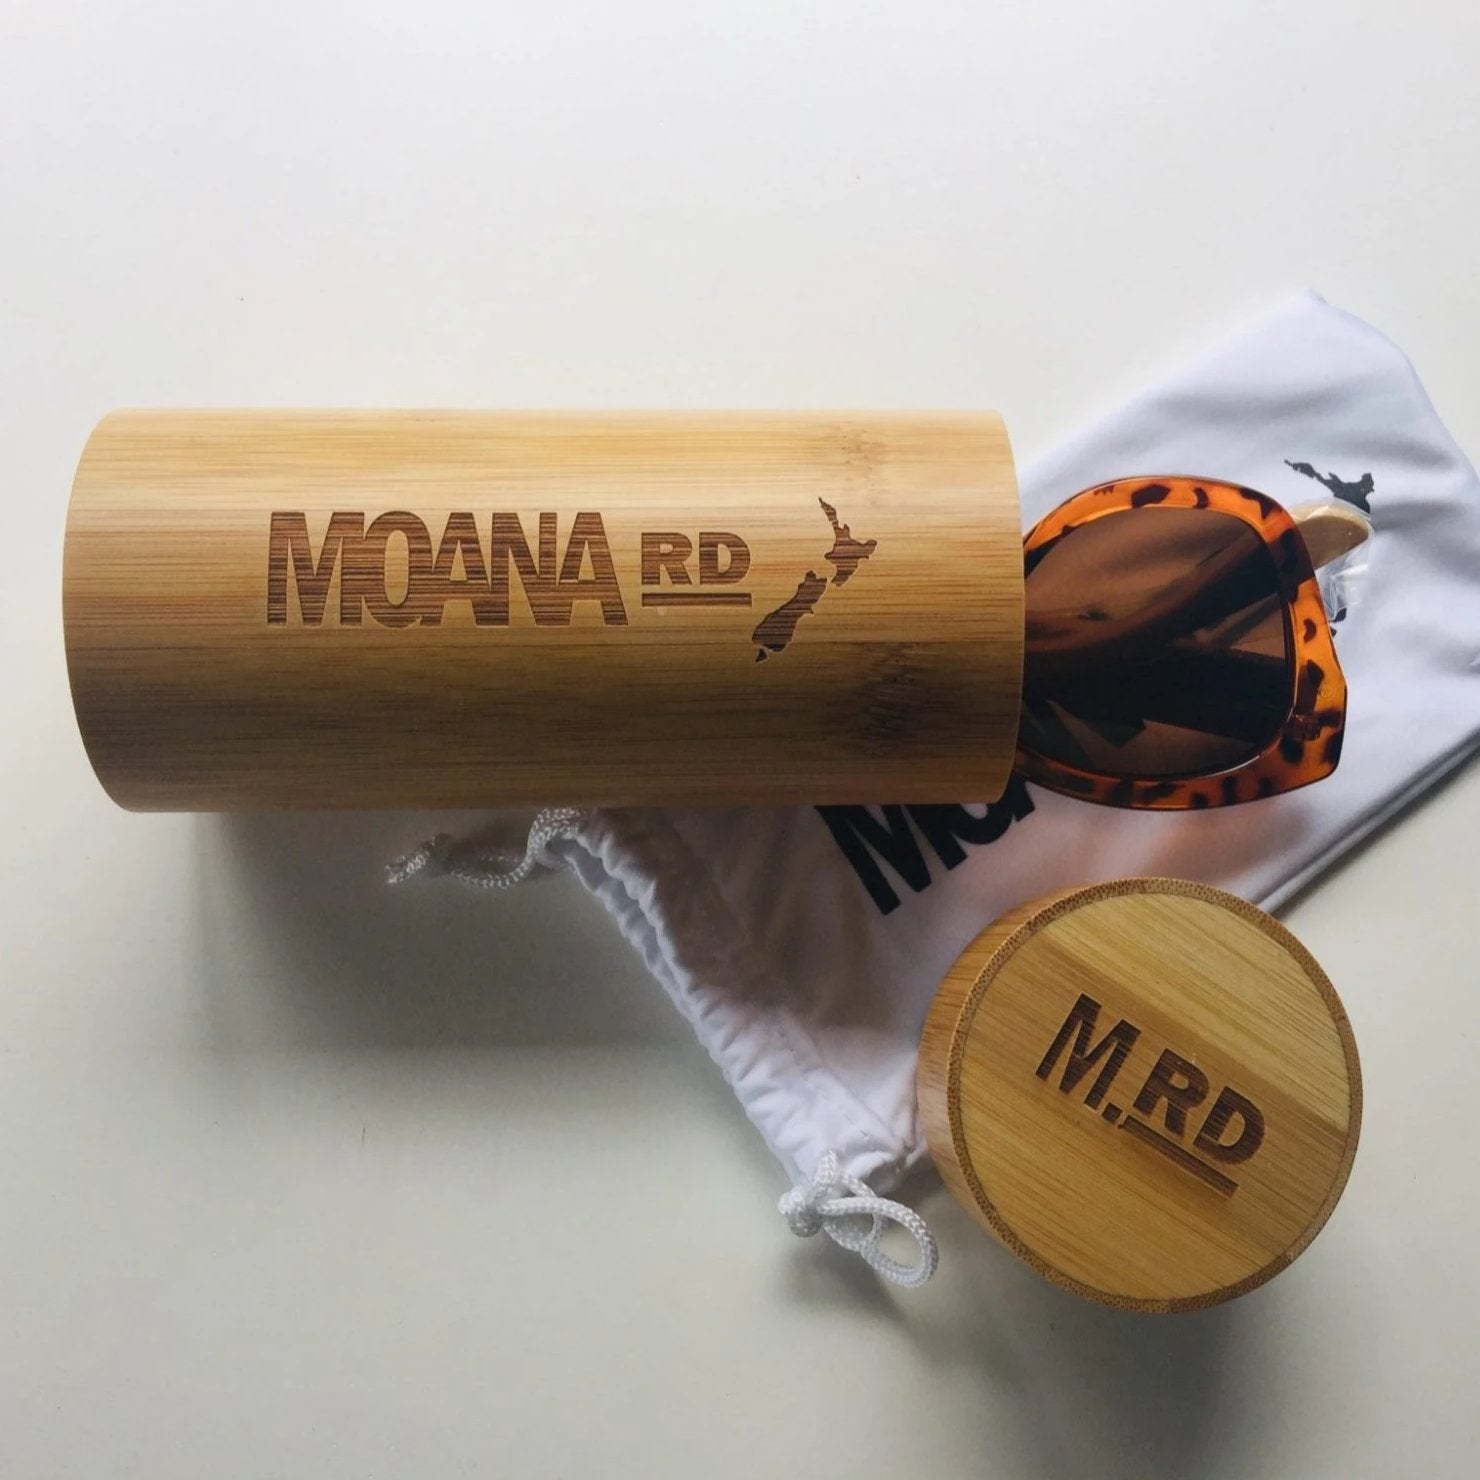 Moana Road Bamboo Case